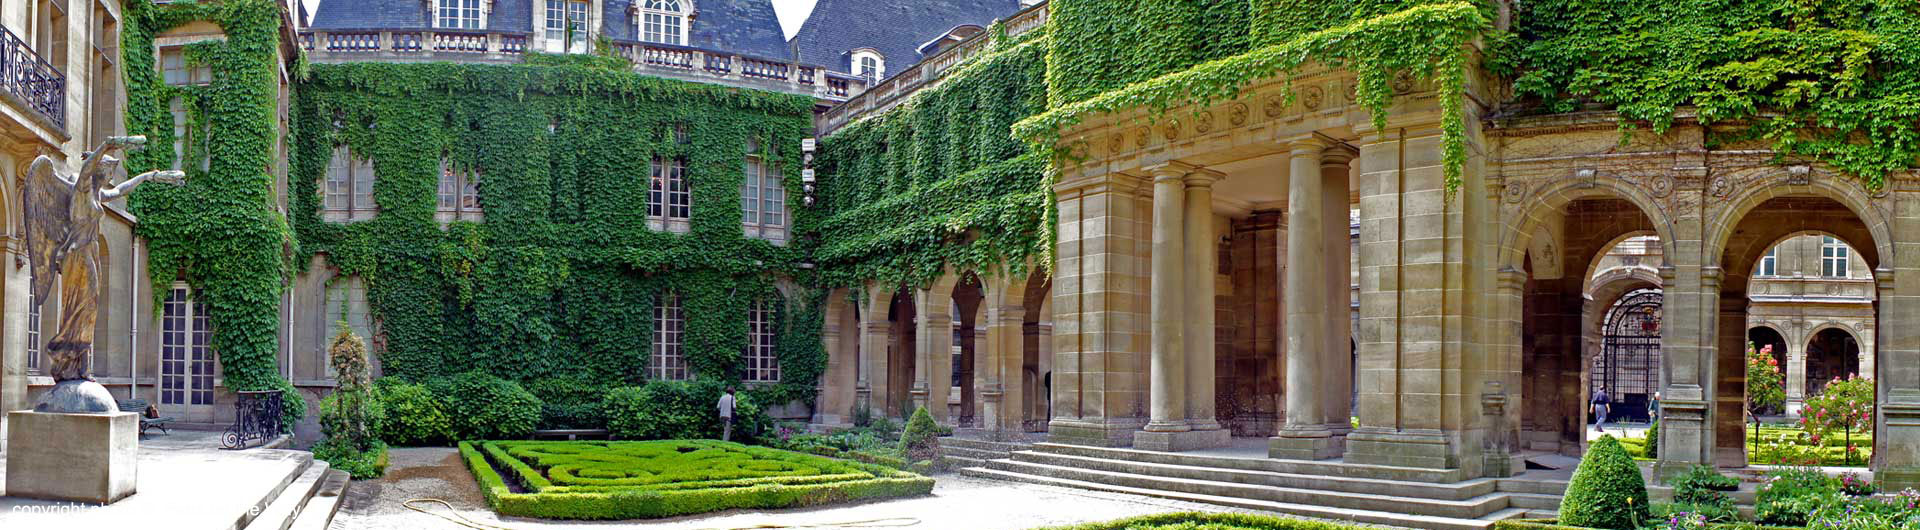 Guided Tour of Carnavalet MUSEUM